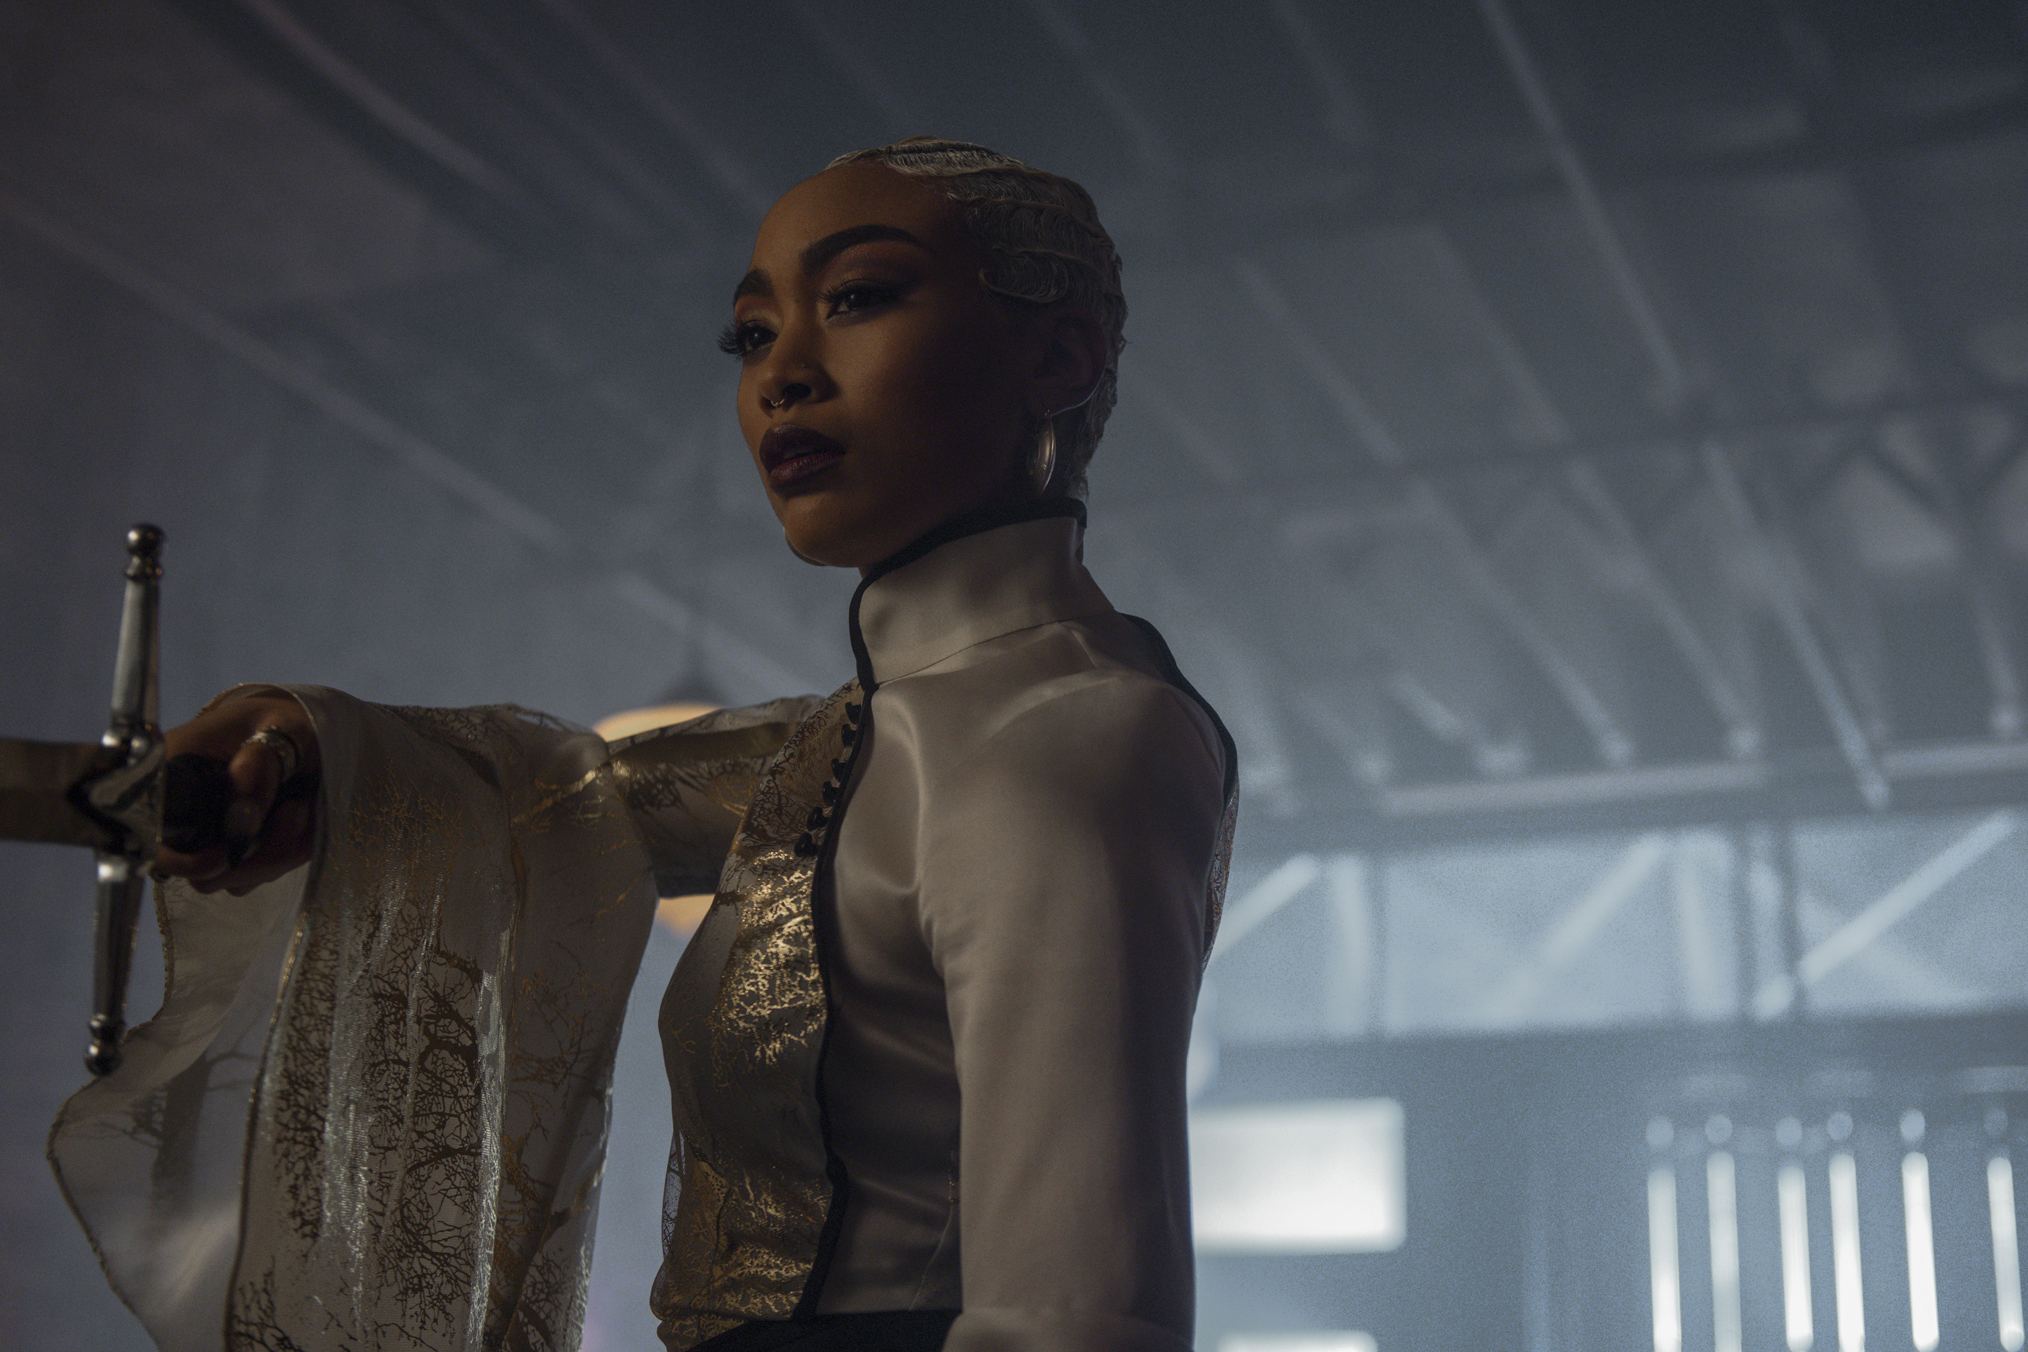 Tati Gabrielle comme Prudence dans Chilling Adventures of Sabrina Chapitre 32